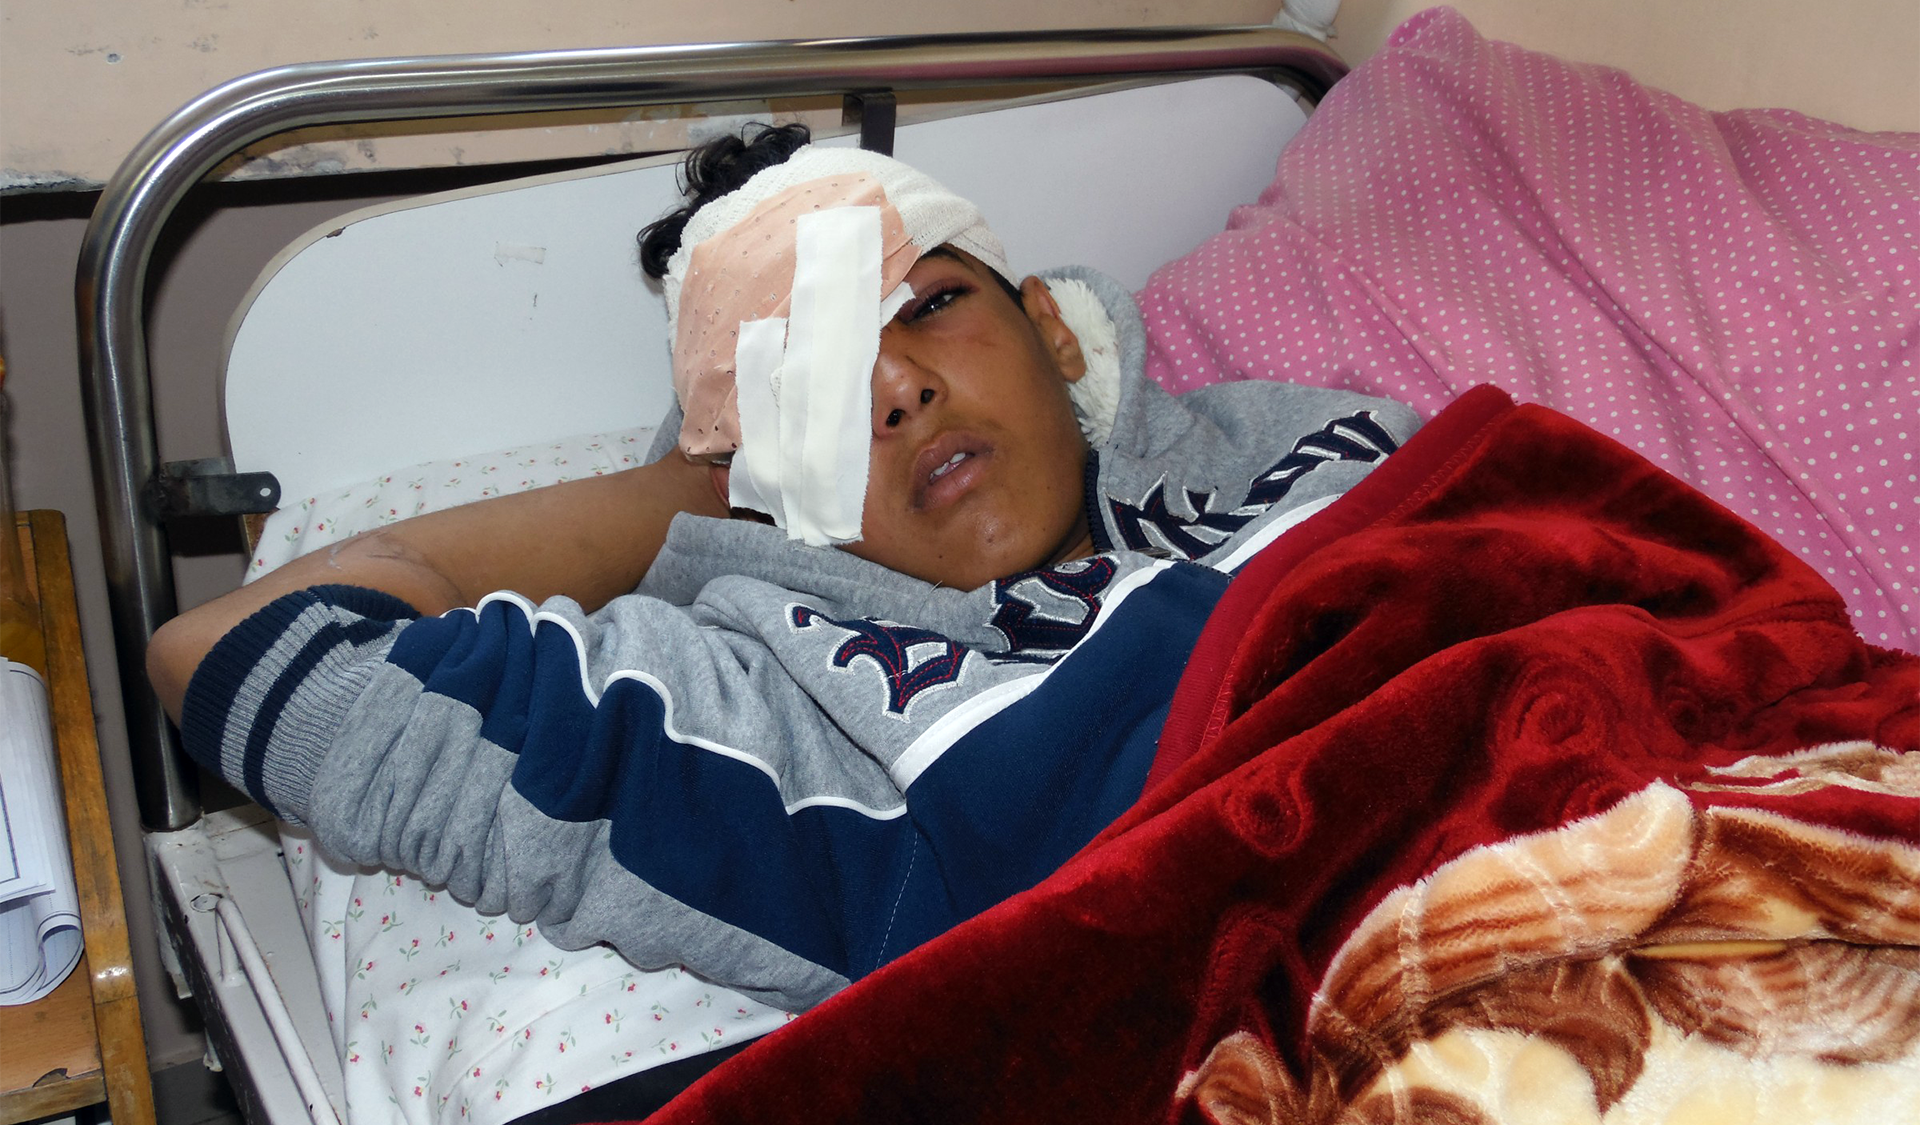 Israeli forces shot 14-year-old Mohammad Farani in the face with a tear gas canister, causing skull fracture and loss of his right eye. (Photo: DCIP / Mohammad Abu Rukbeh)